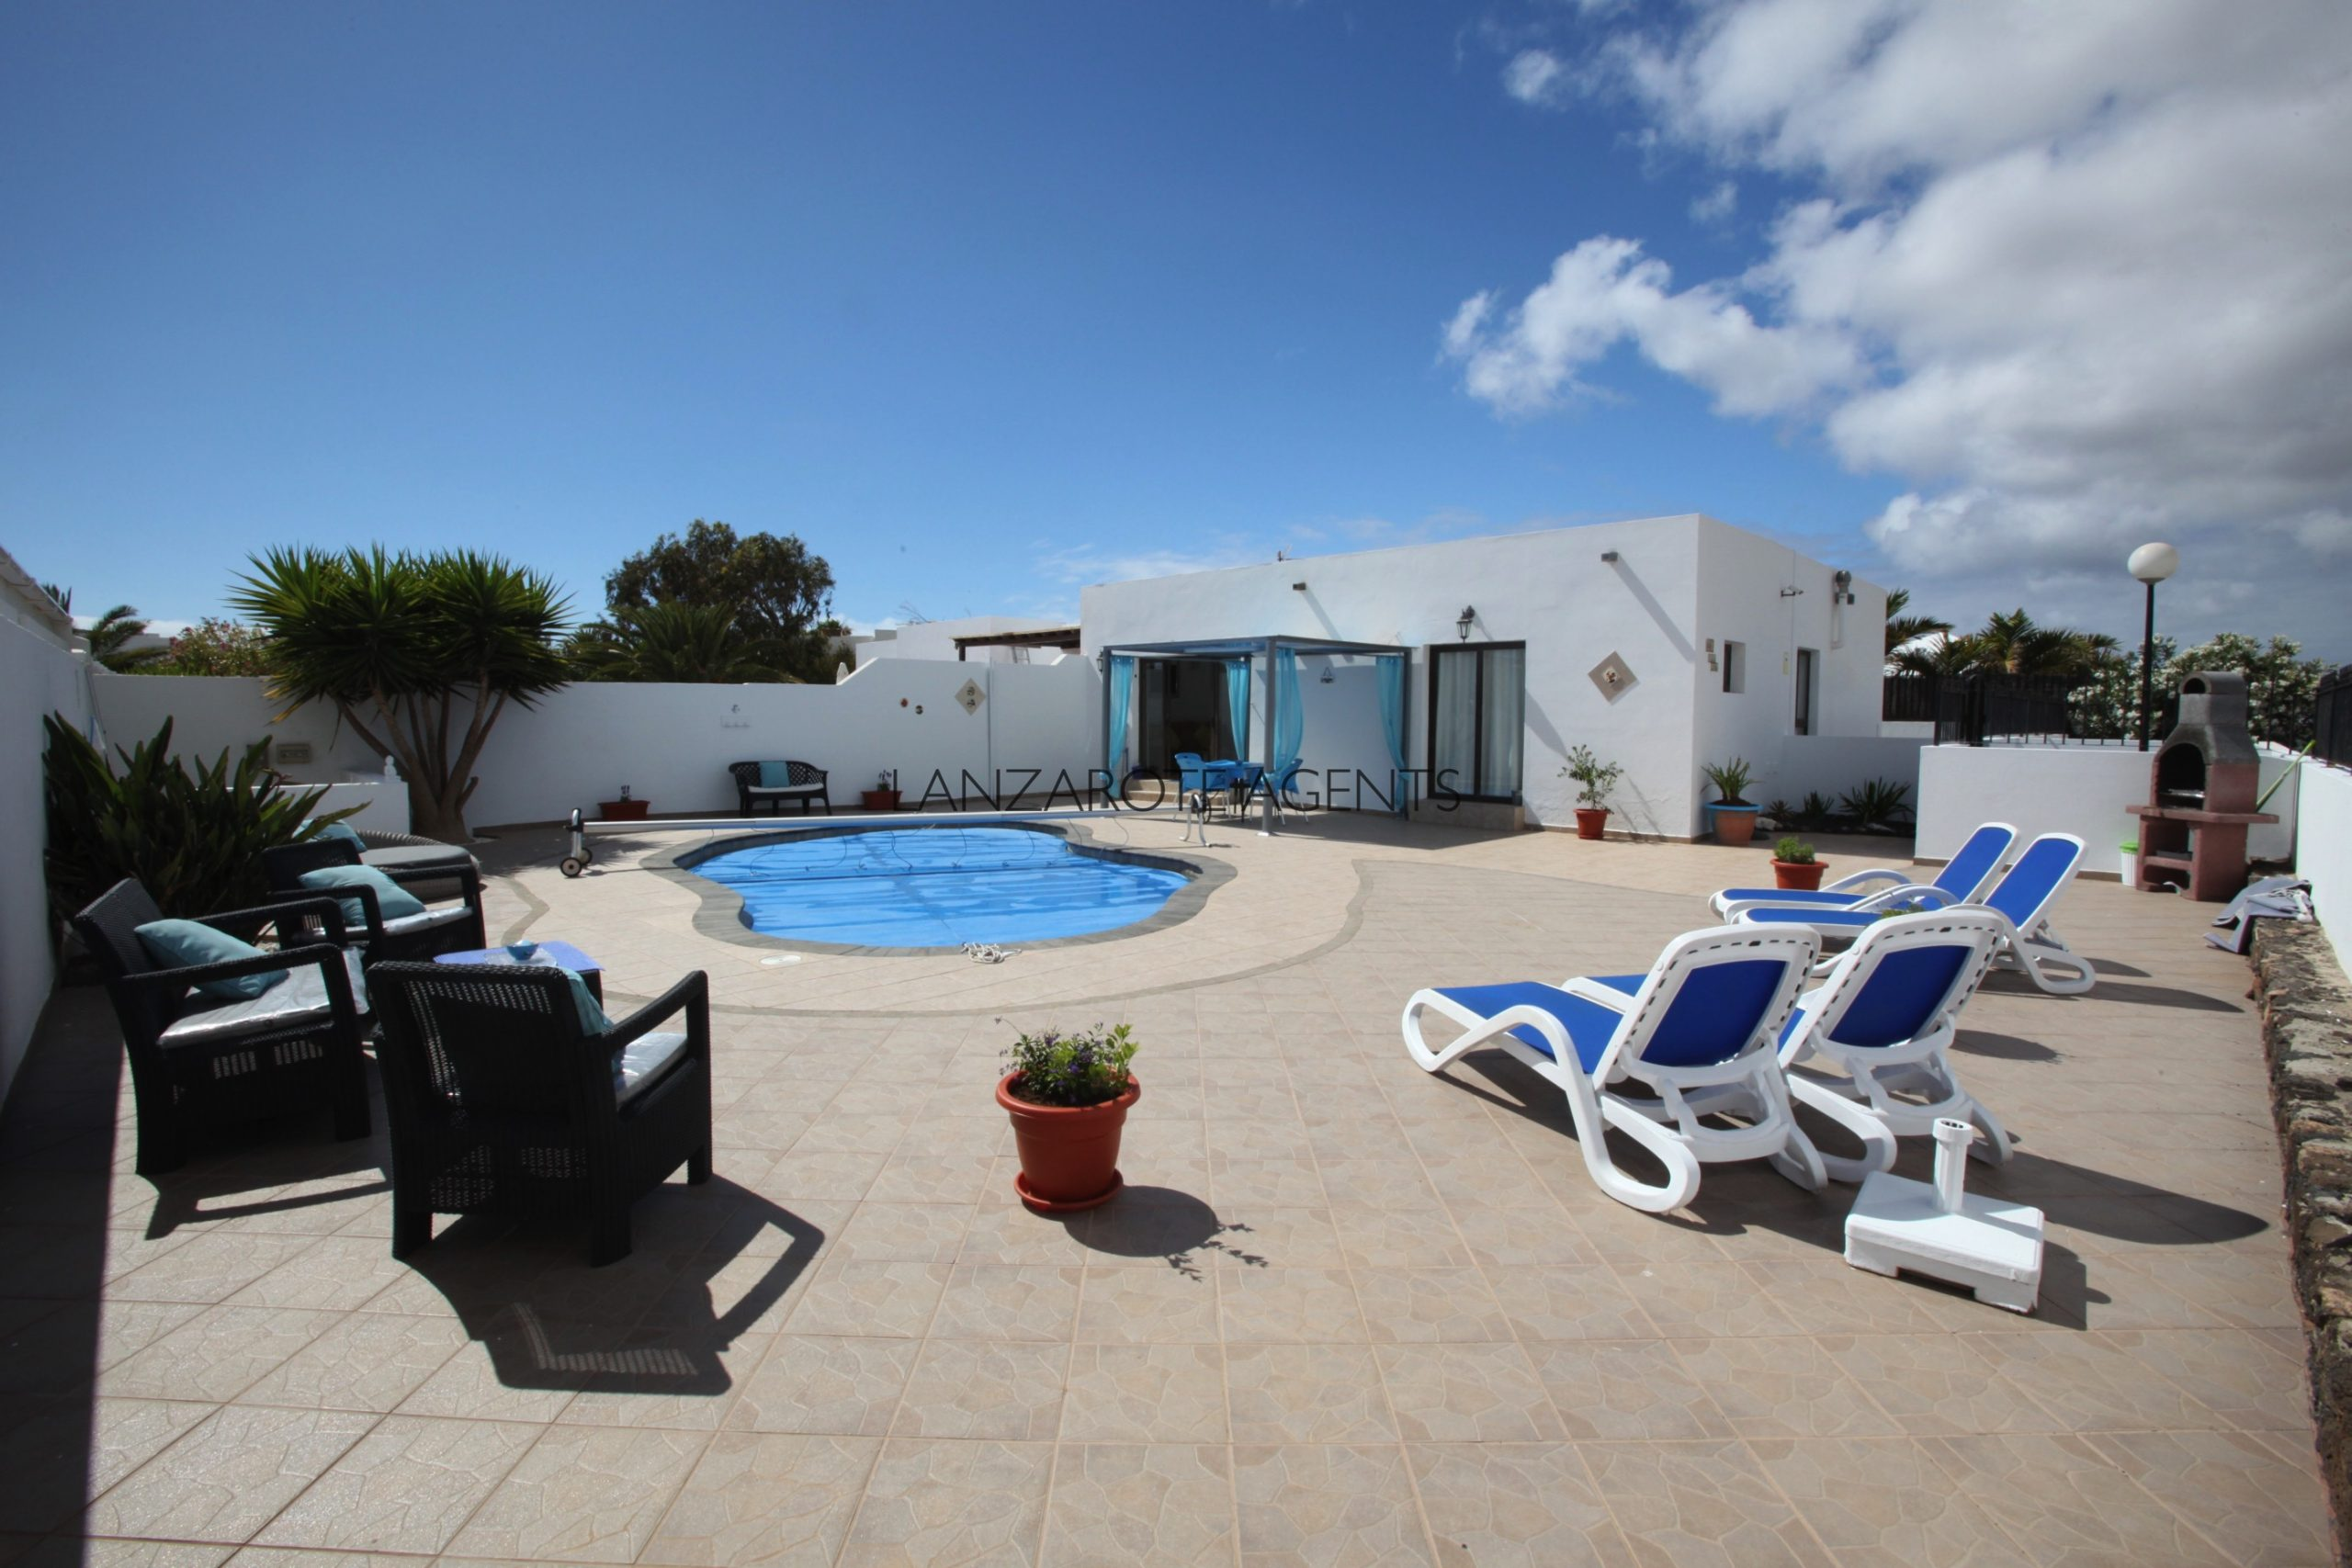 Three Bedroom Semi detached Villa with Private Pool near Playa Blanca Town Centre.